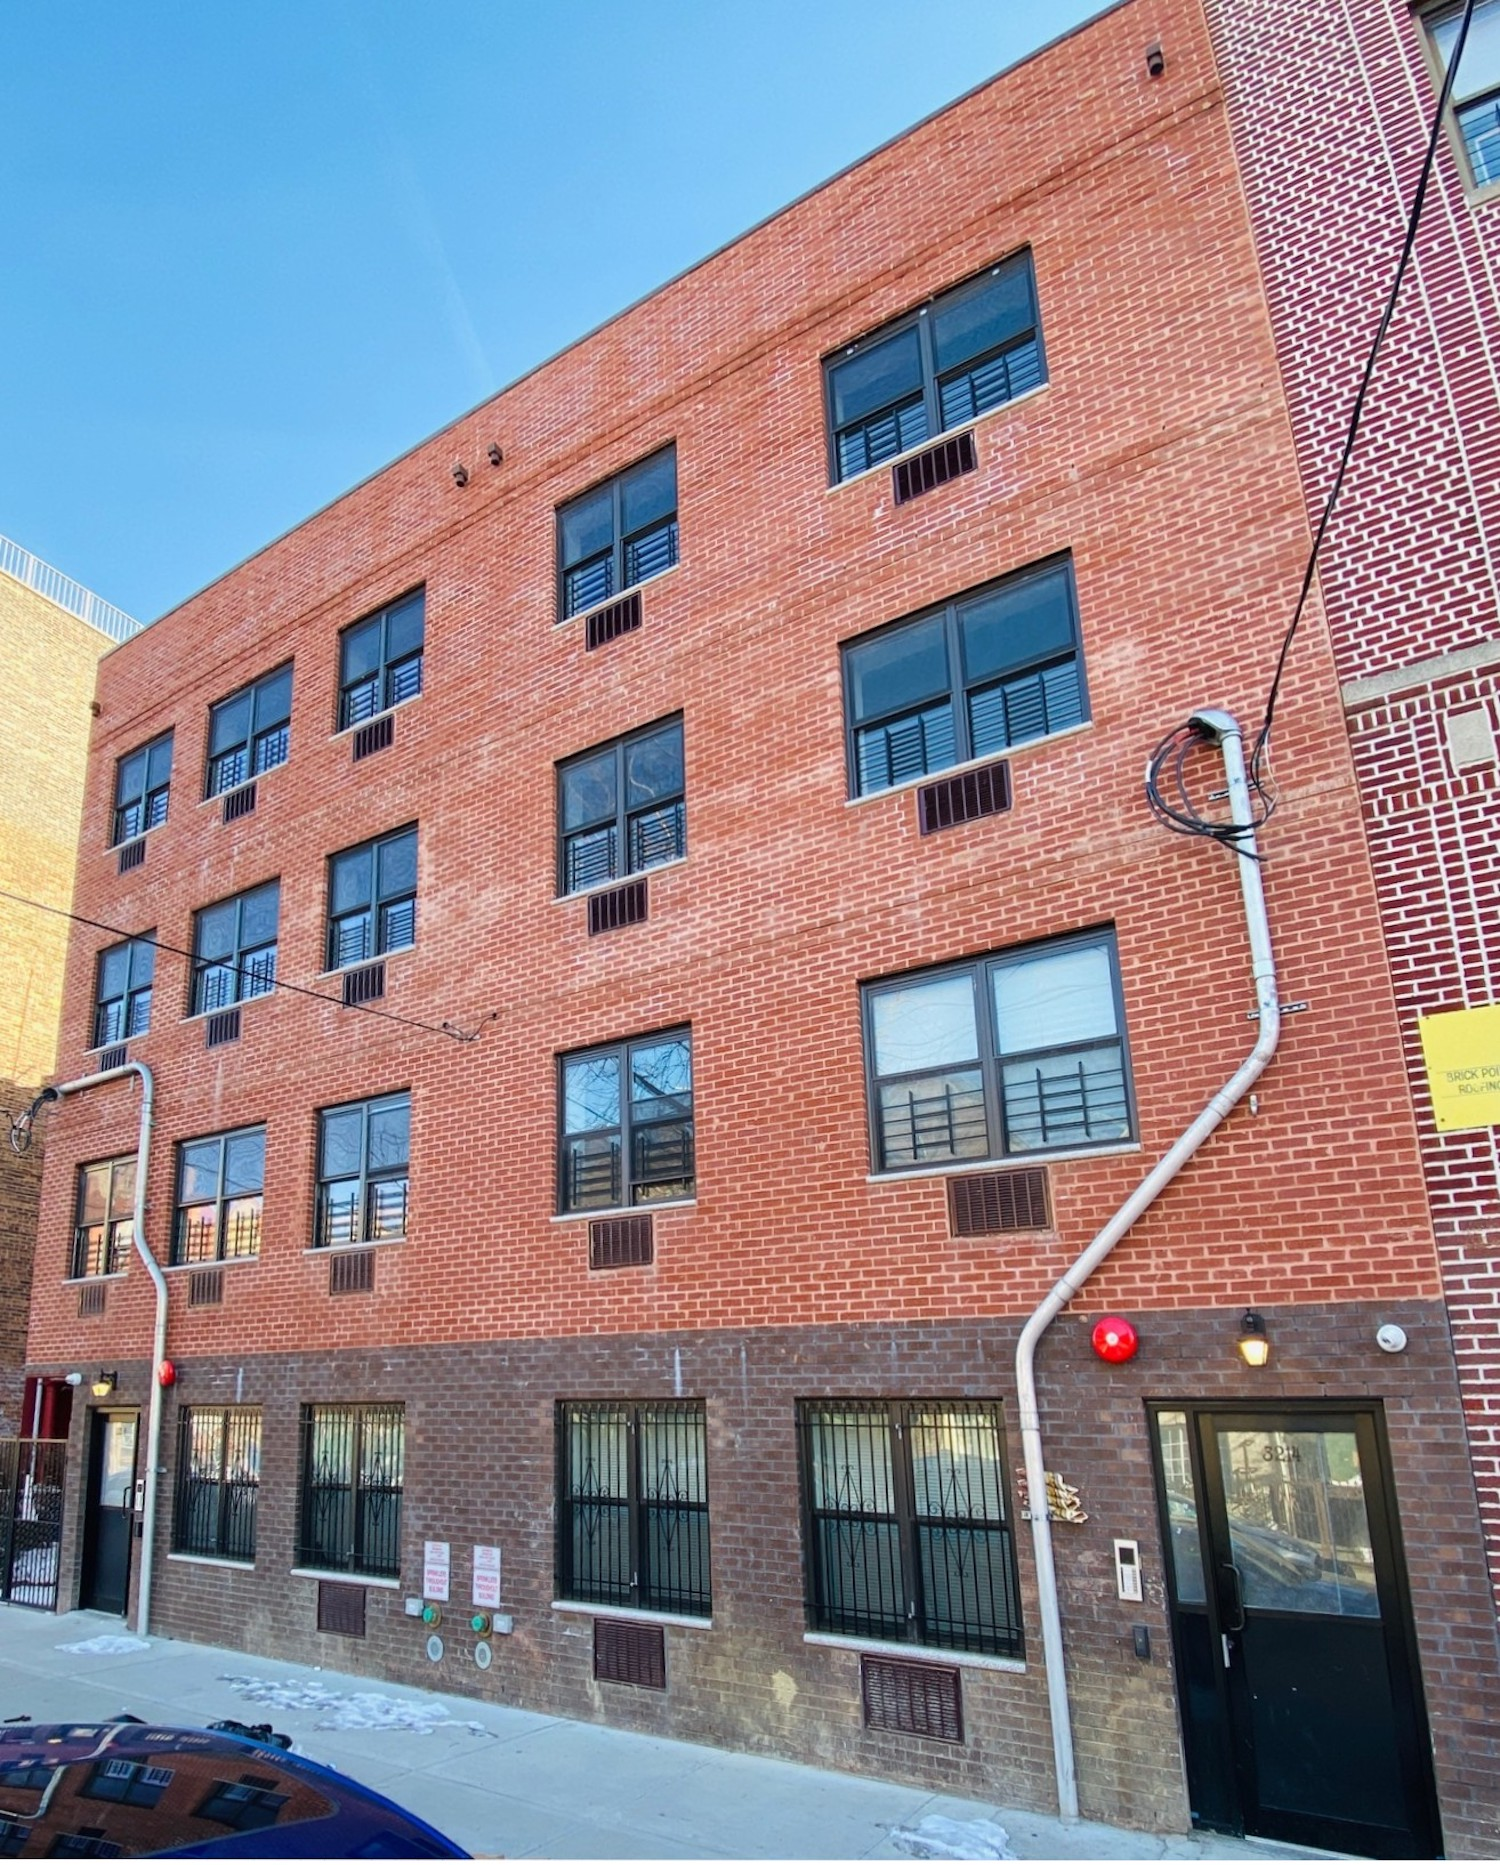 3214 Cruger Avenue in Williamsbridge, The Bronx. Photo Courtesy of NY Housing Connect